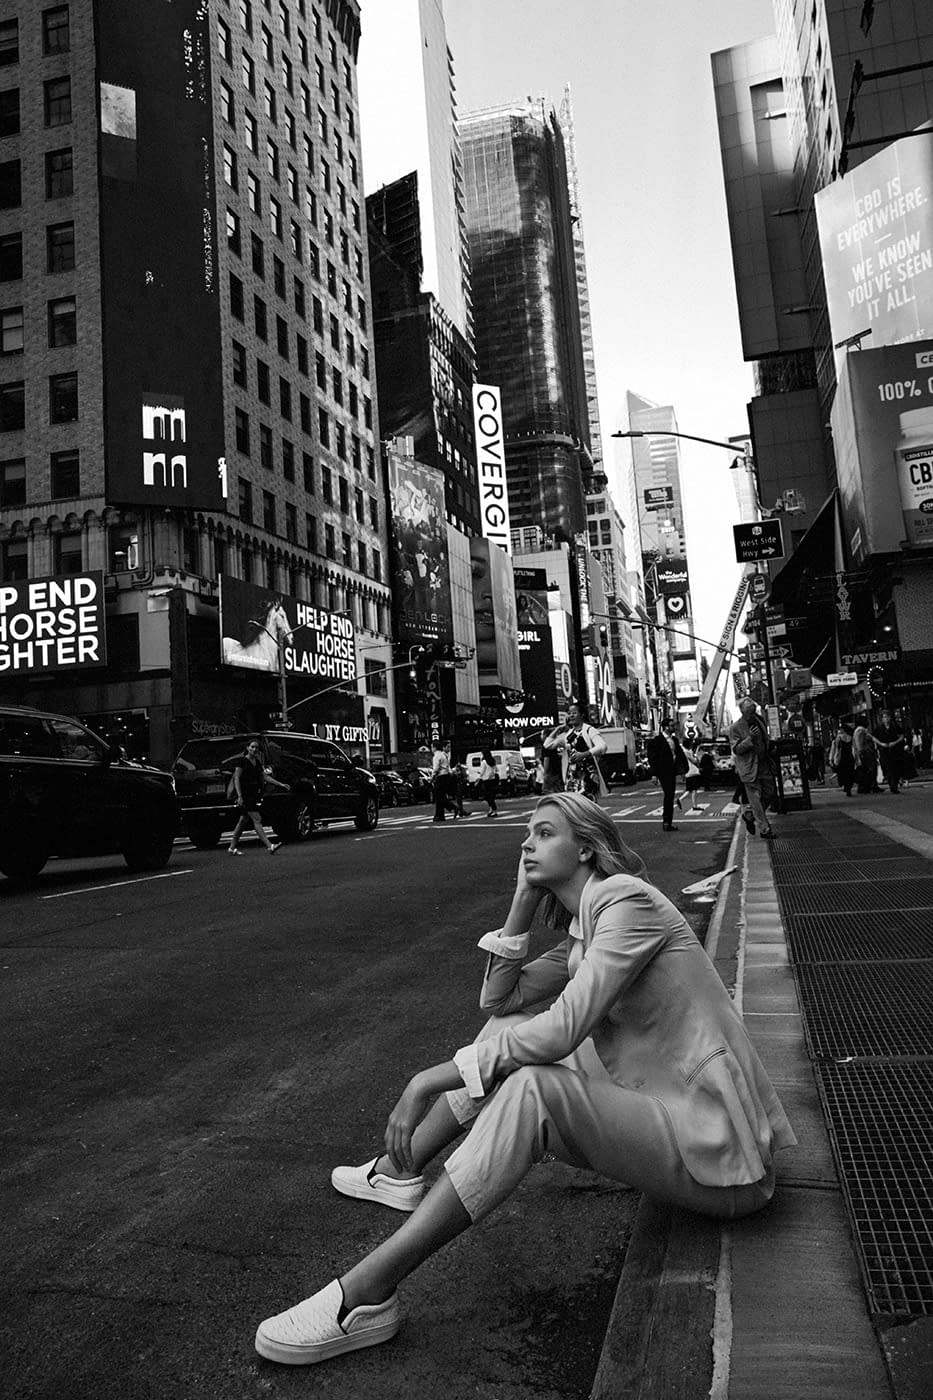 KYLIE NEW YORK BY ENRIC GALCERAN - PHOTO 06